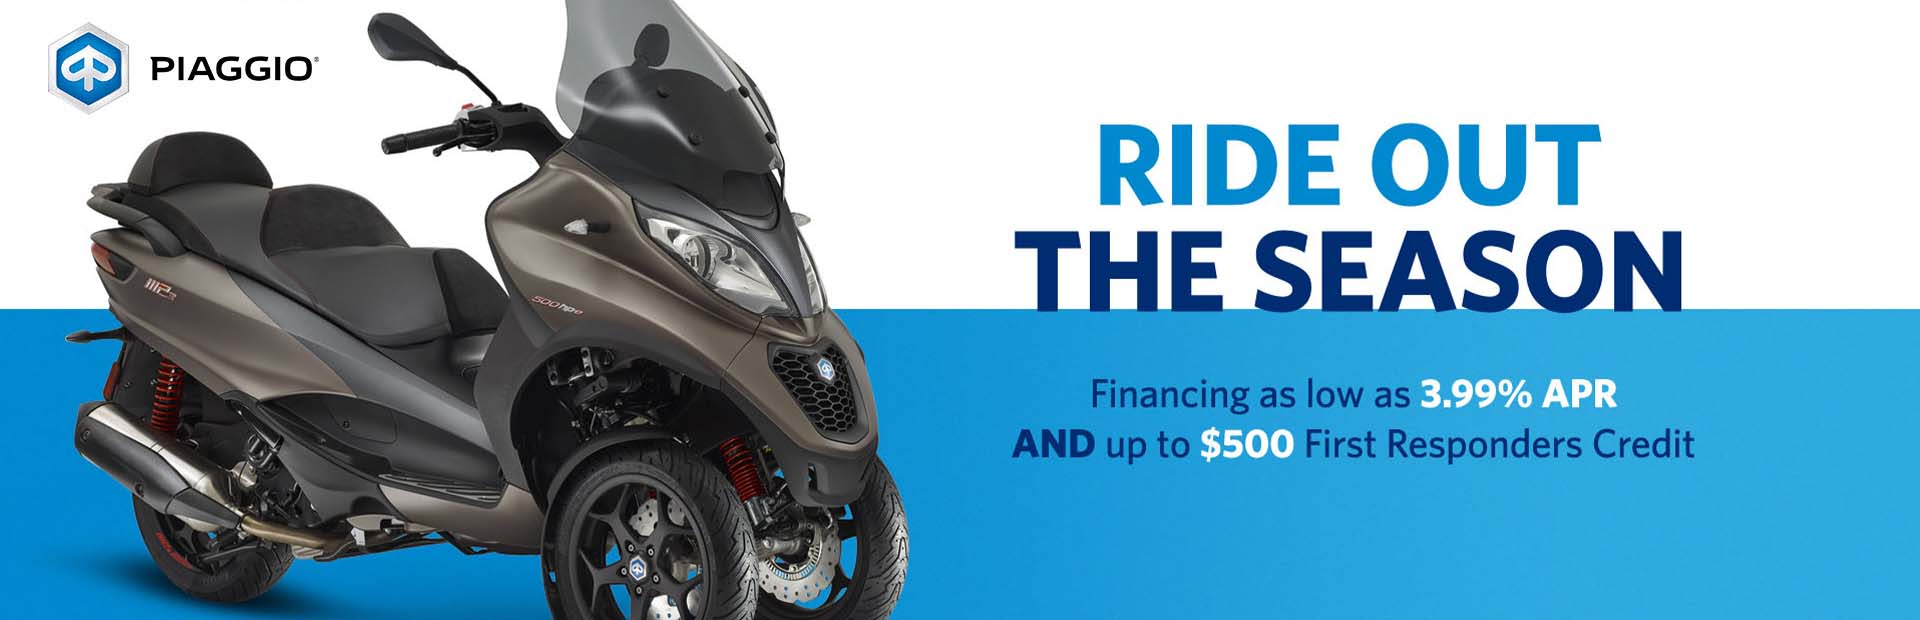 Piaggio - Ride Out the Season at Aces Motorcycles - Fort Collins